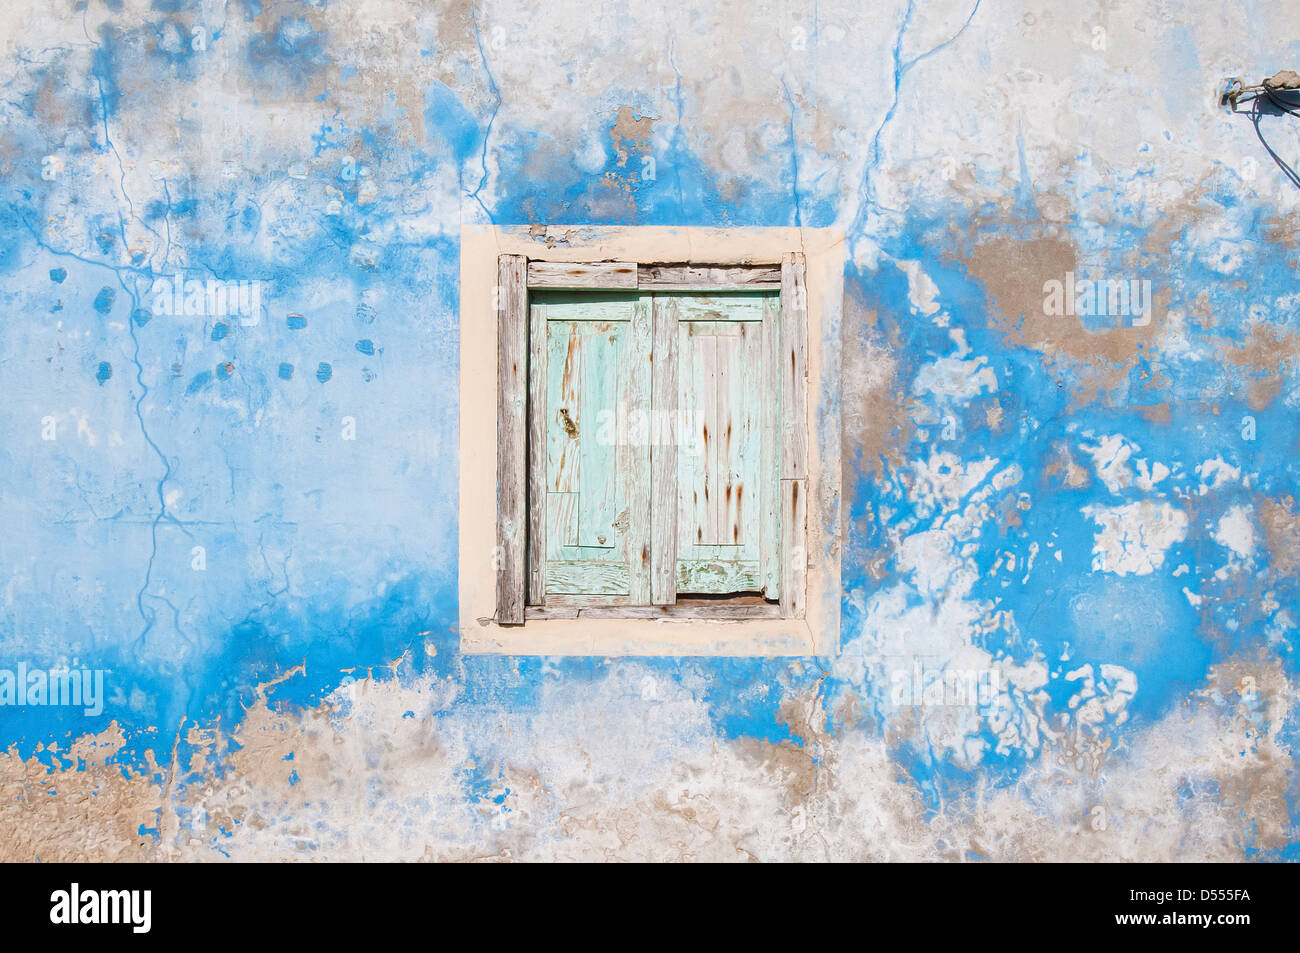 Dilapidated window, shutters and wall - Stock Image